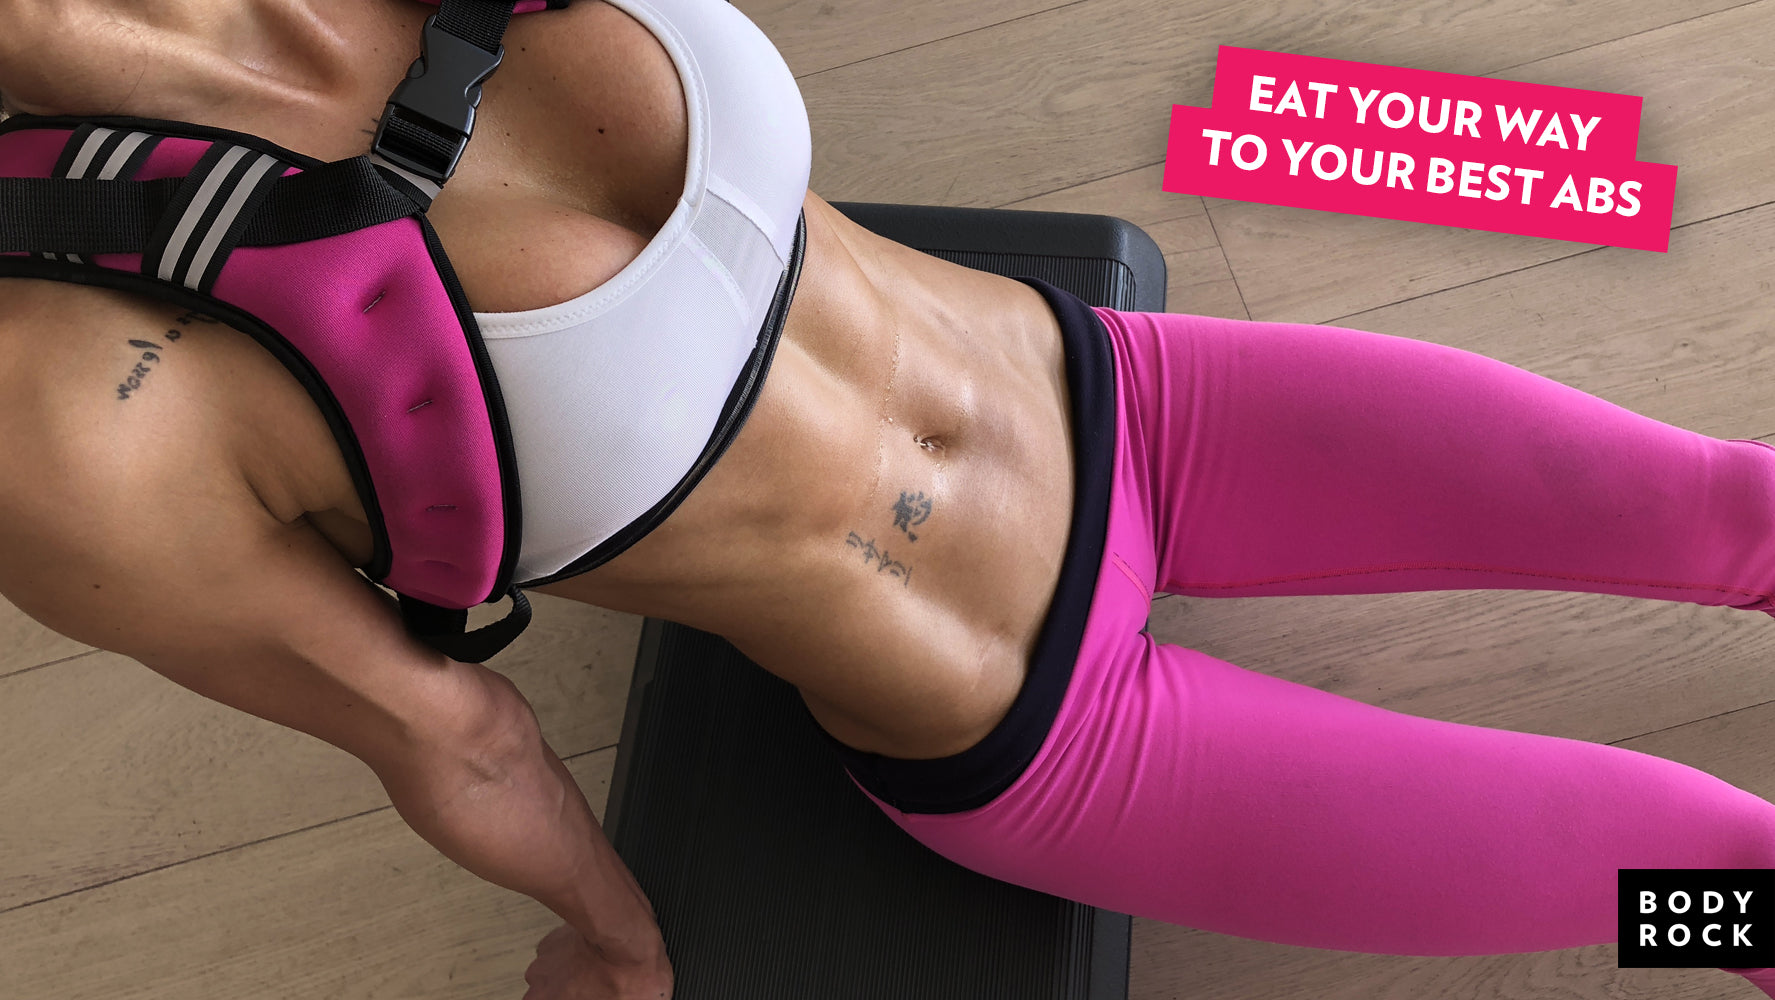 Eat Your Way to Your Best Abs